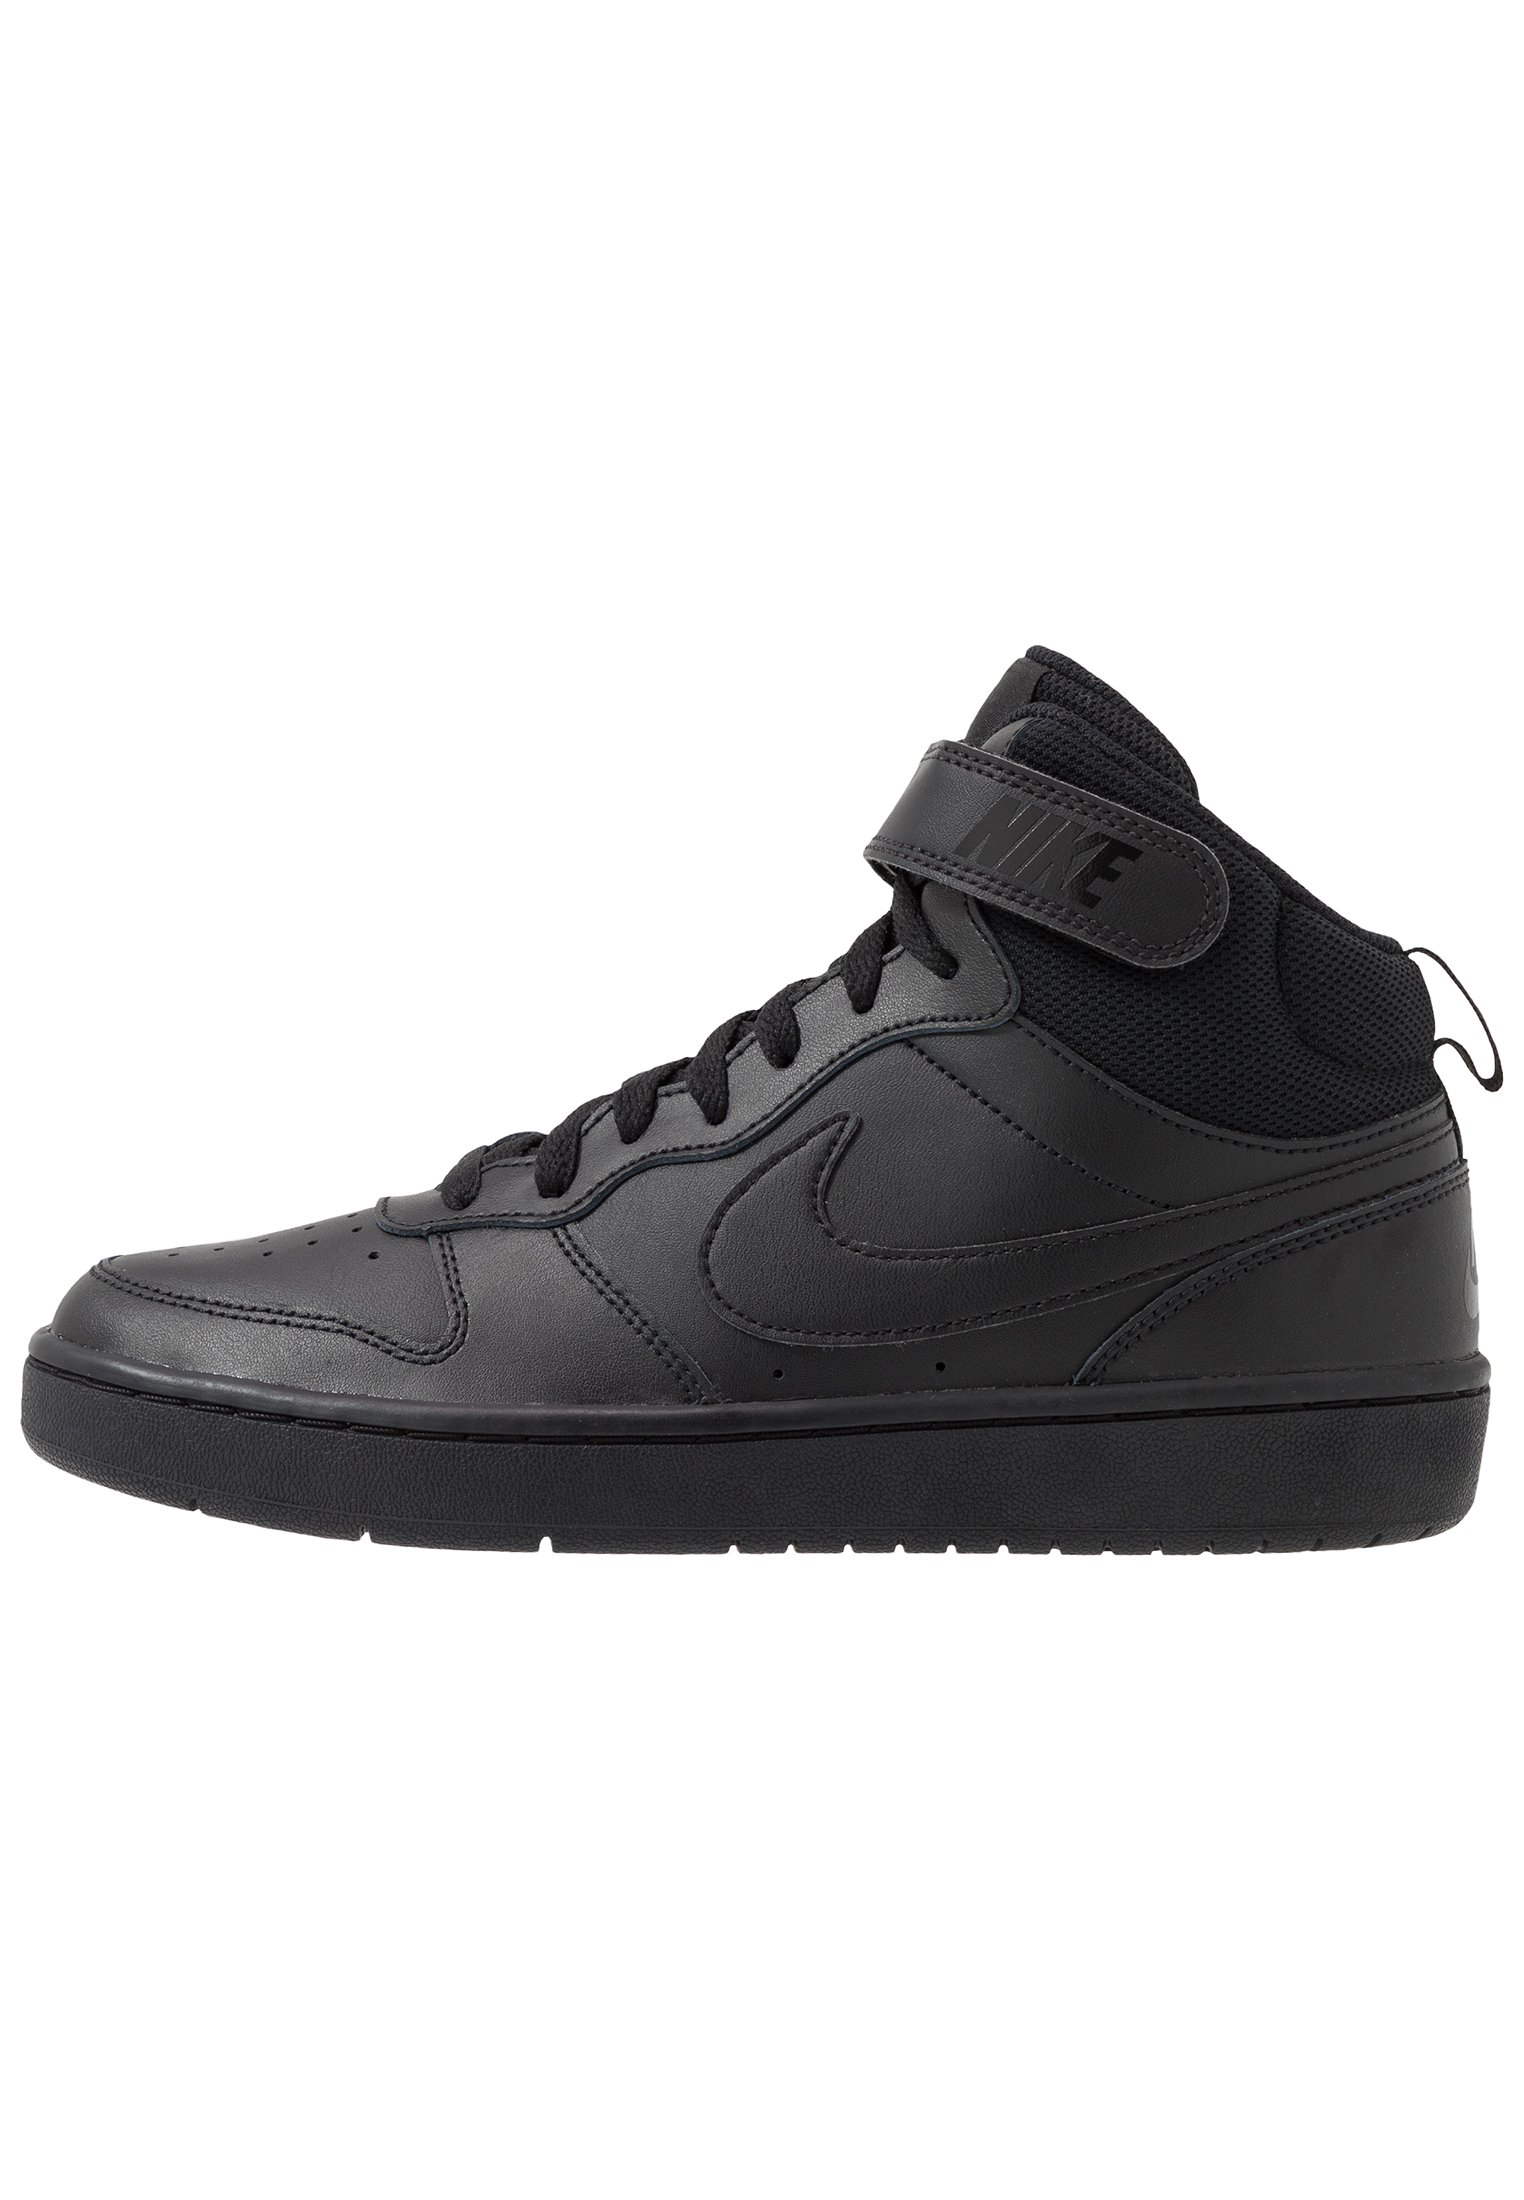 chaussures montantes nike